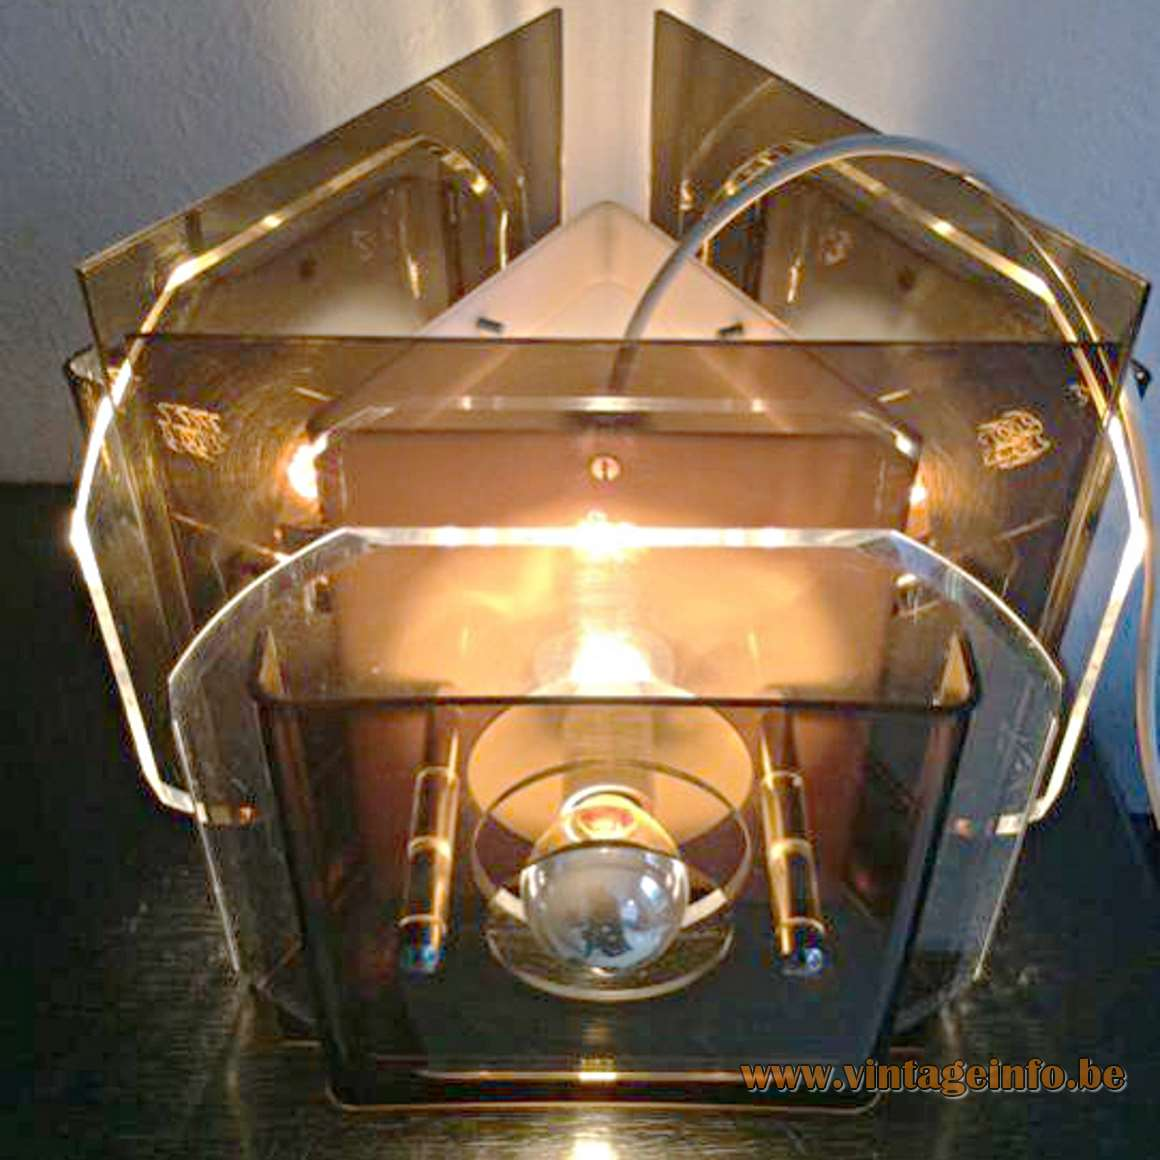 Herda Square Acrylic Chandelier brown smoked and clear acrylic 1960s 1970s MCM plastic Perspex